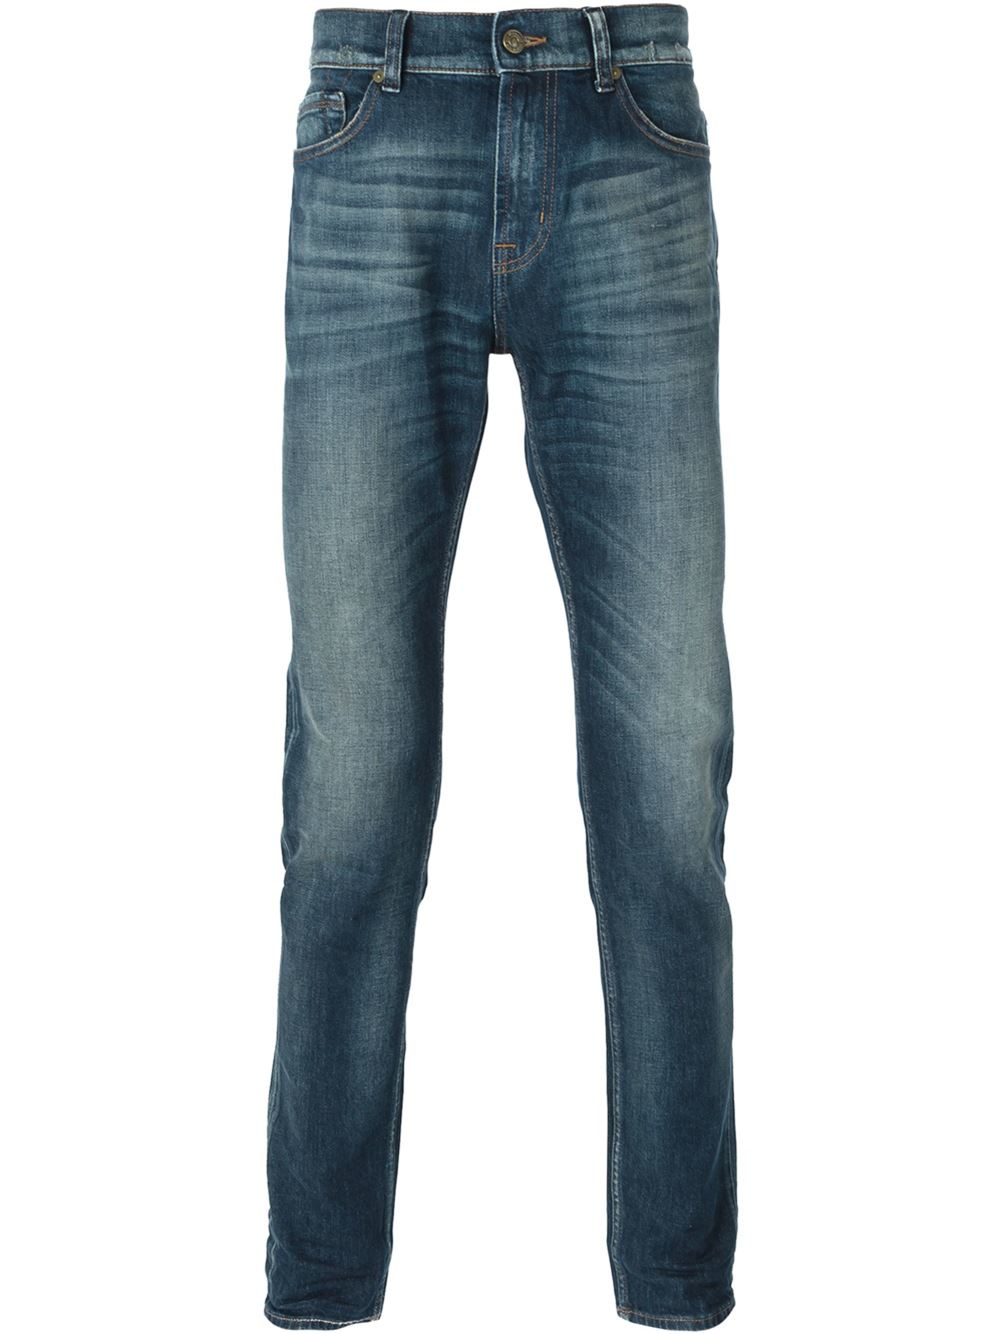 for all mankind 39 ronnie 39 skinny jeans in blue for men lyst. Black Bedroom Furniture Sets. Home Design Ideas